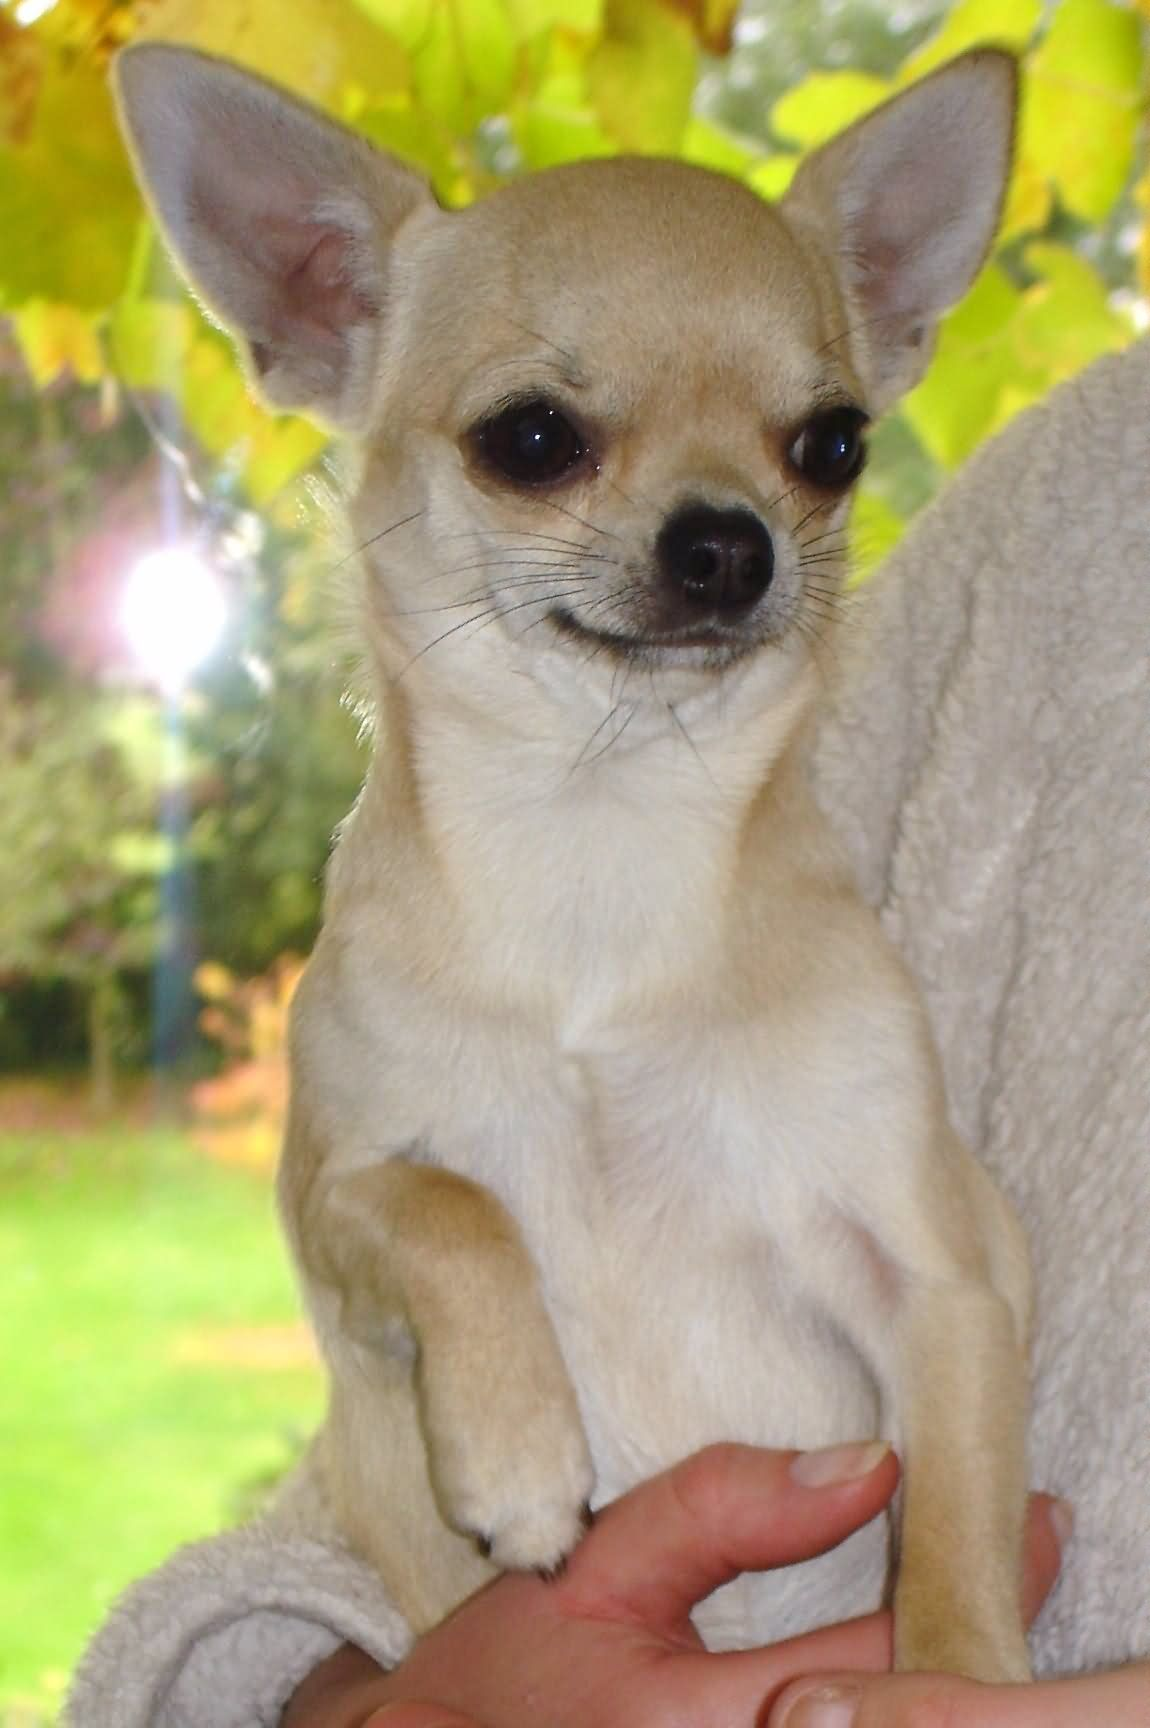 Healthy Pets Have No Body Odor Chihuahua Dogs Dog Breeds Cute Chihuahua